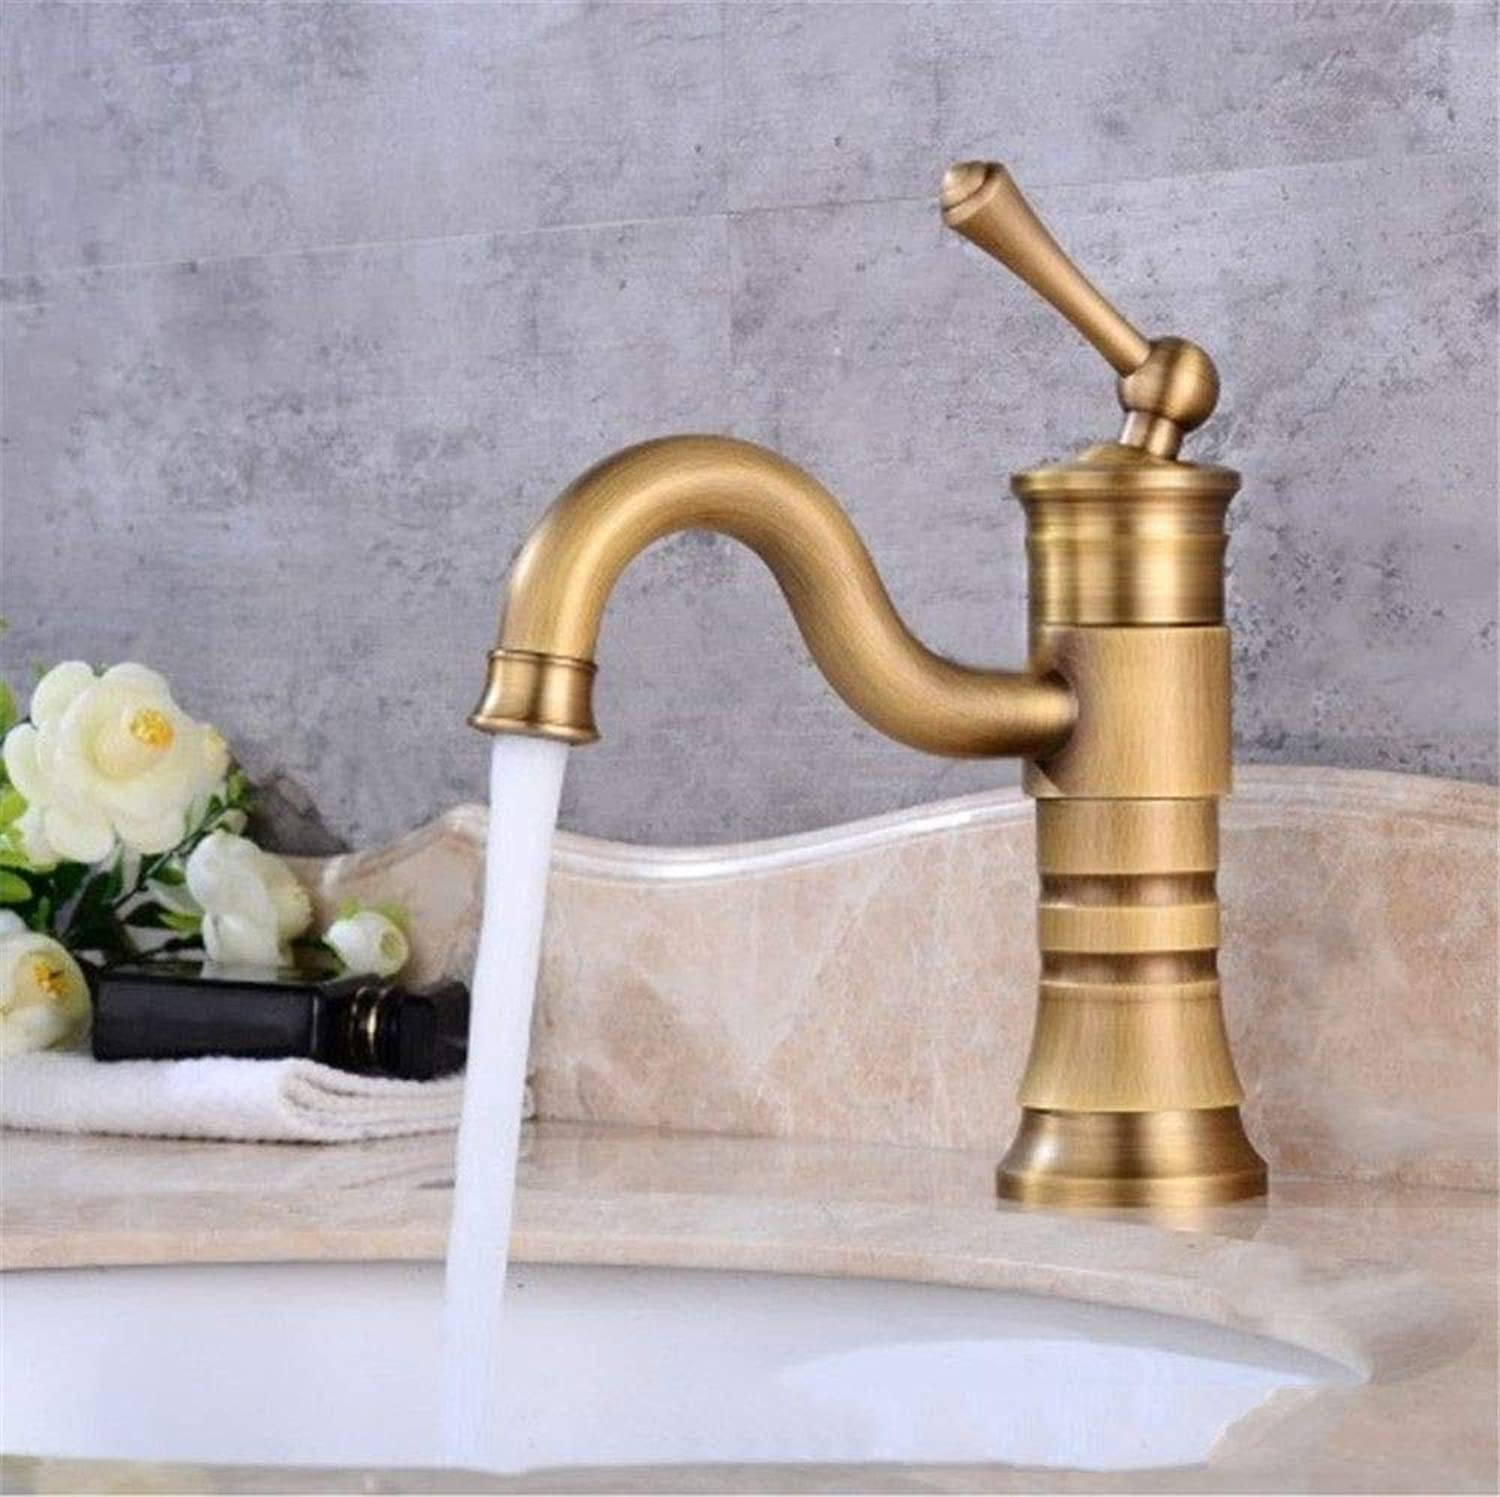 YAWEDA Ancient redary Bathroom Sink Tap Cold and Hot Water Mixer Single Hand Strip Aerator,Middle and High Funds